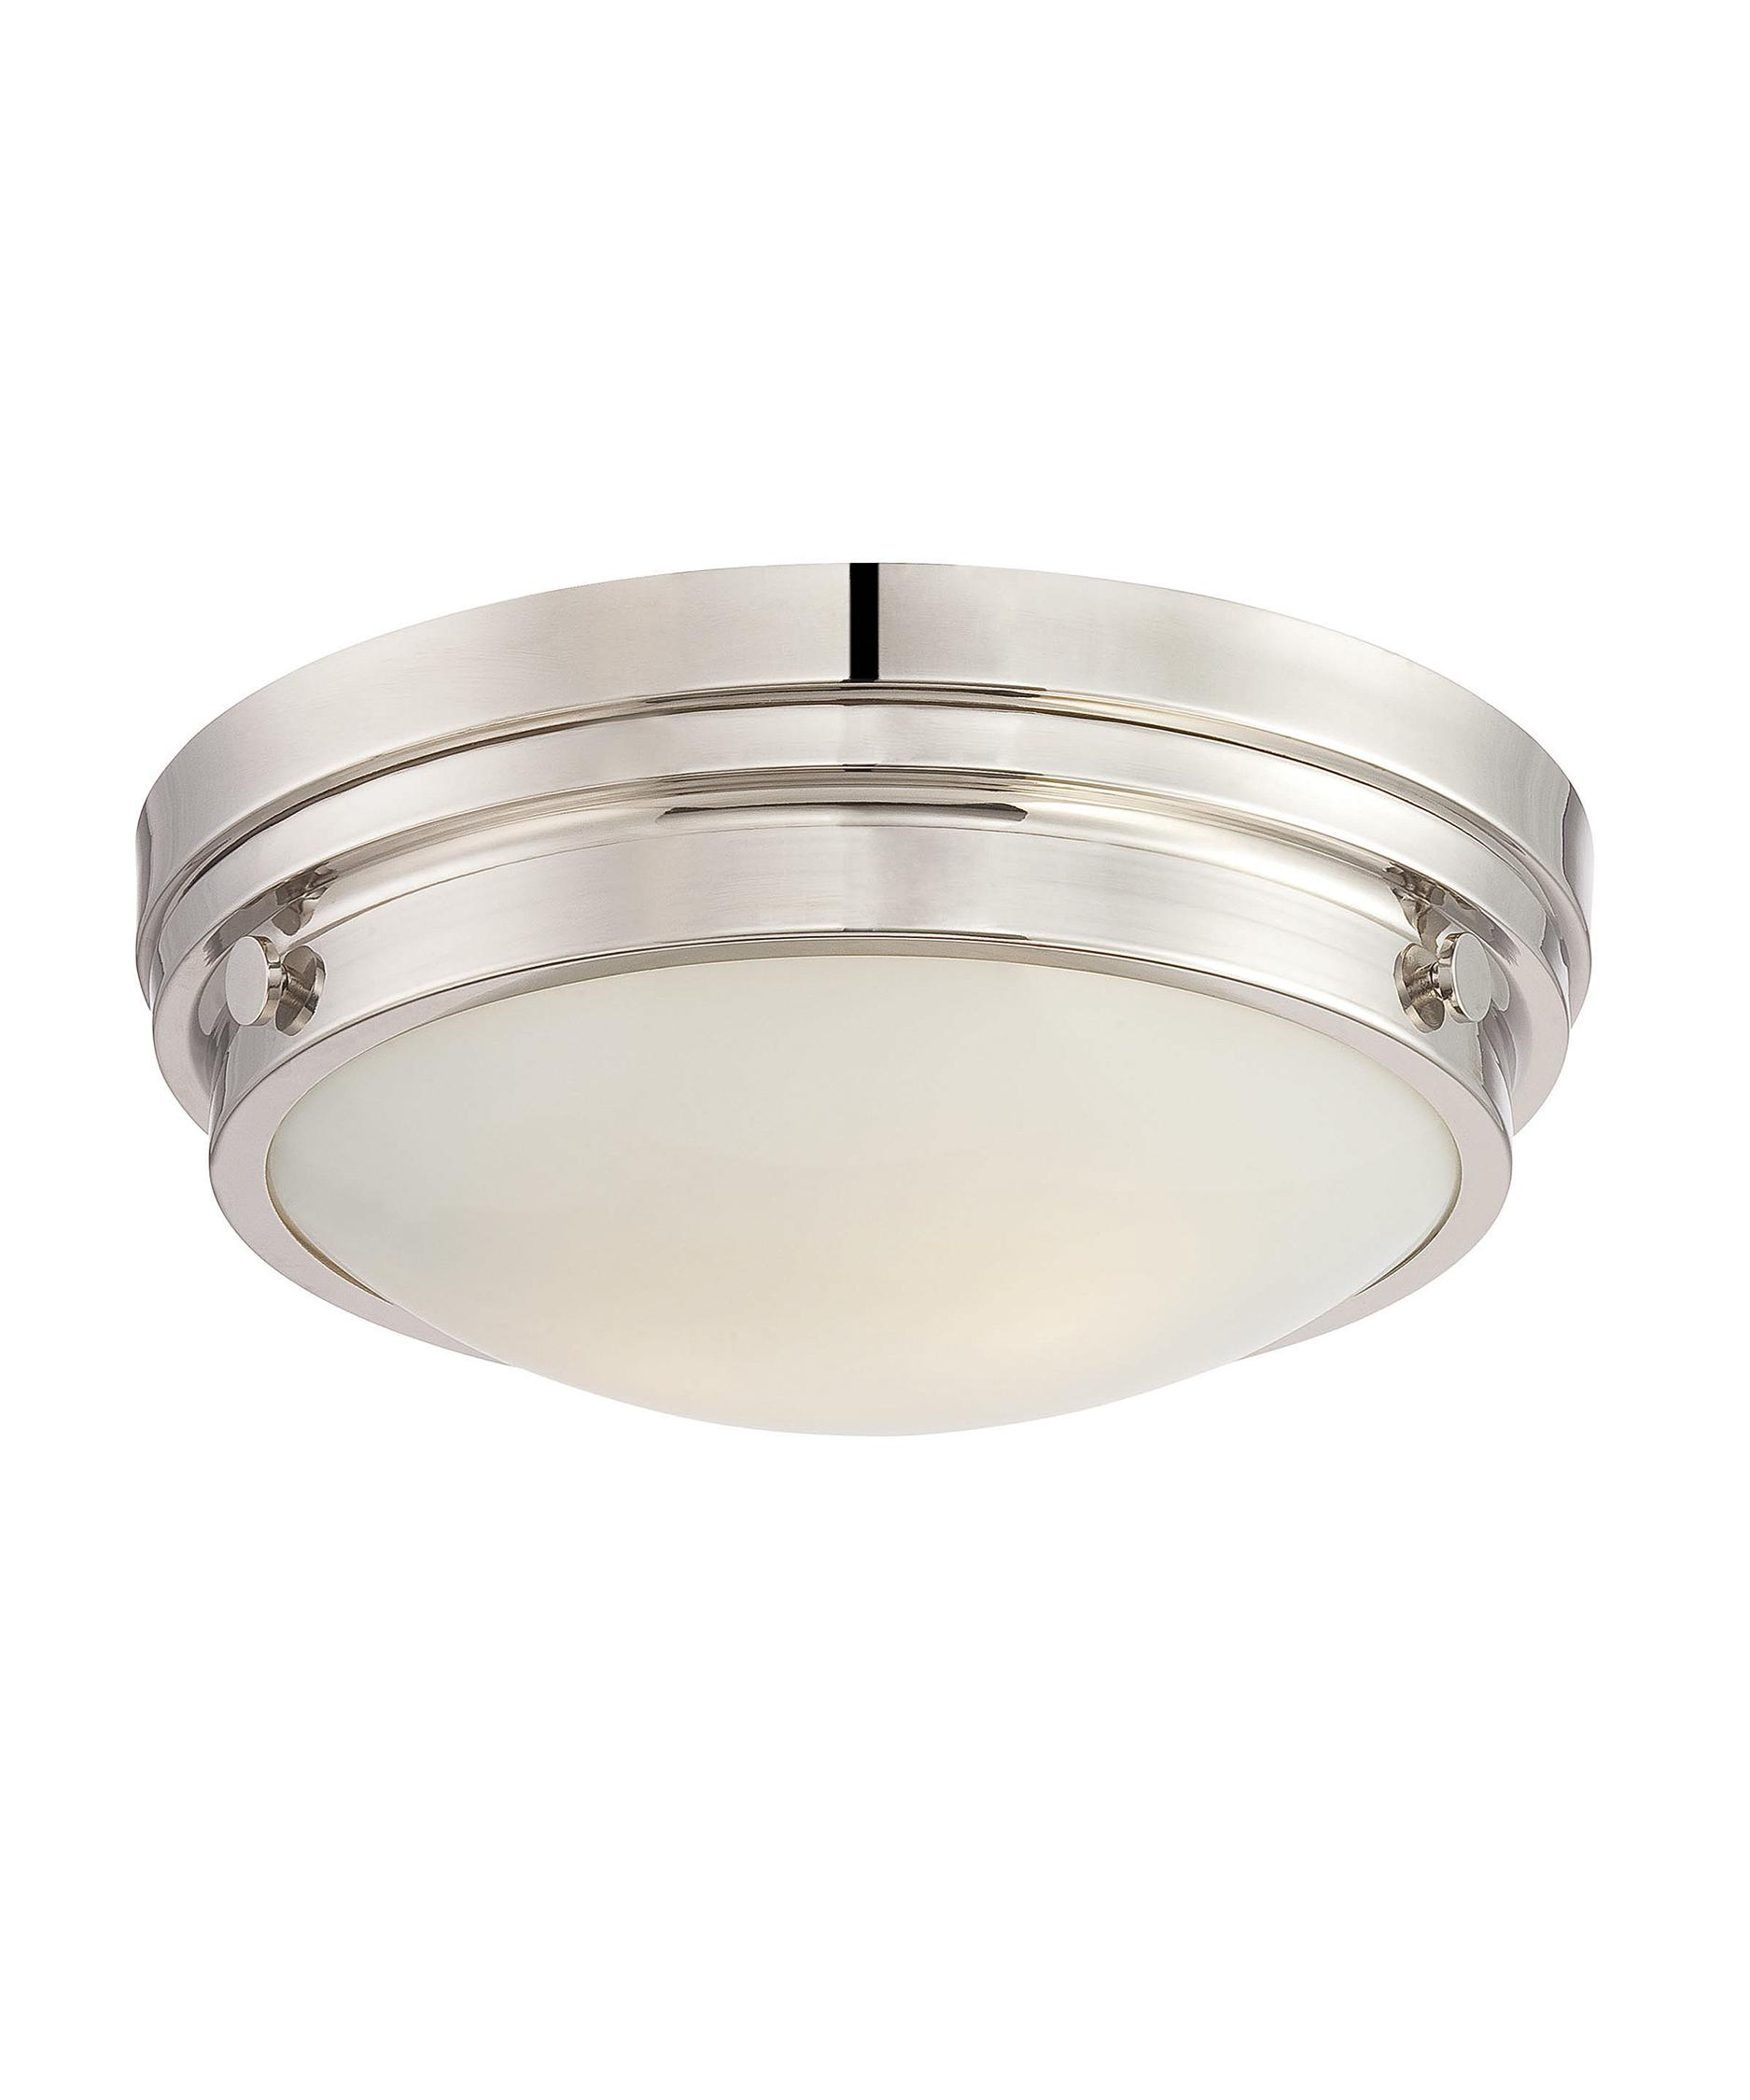 shown in polished nickel finish and white glass - Savoy Lighting